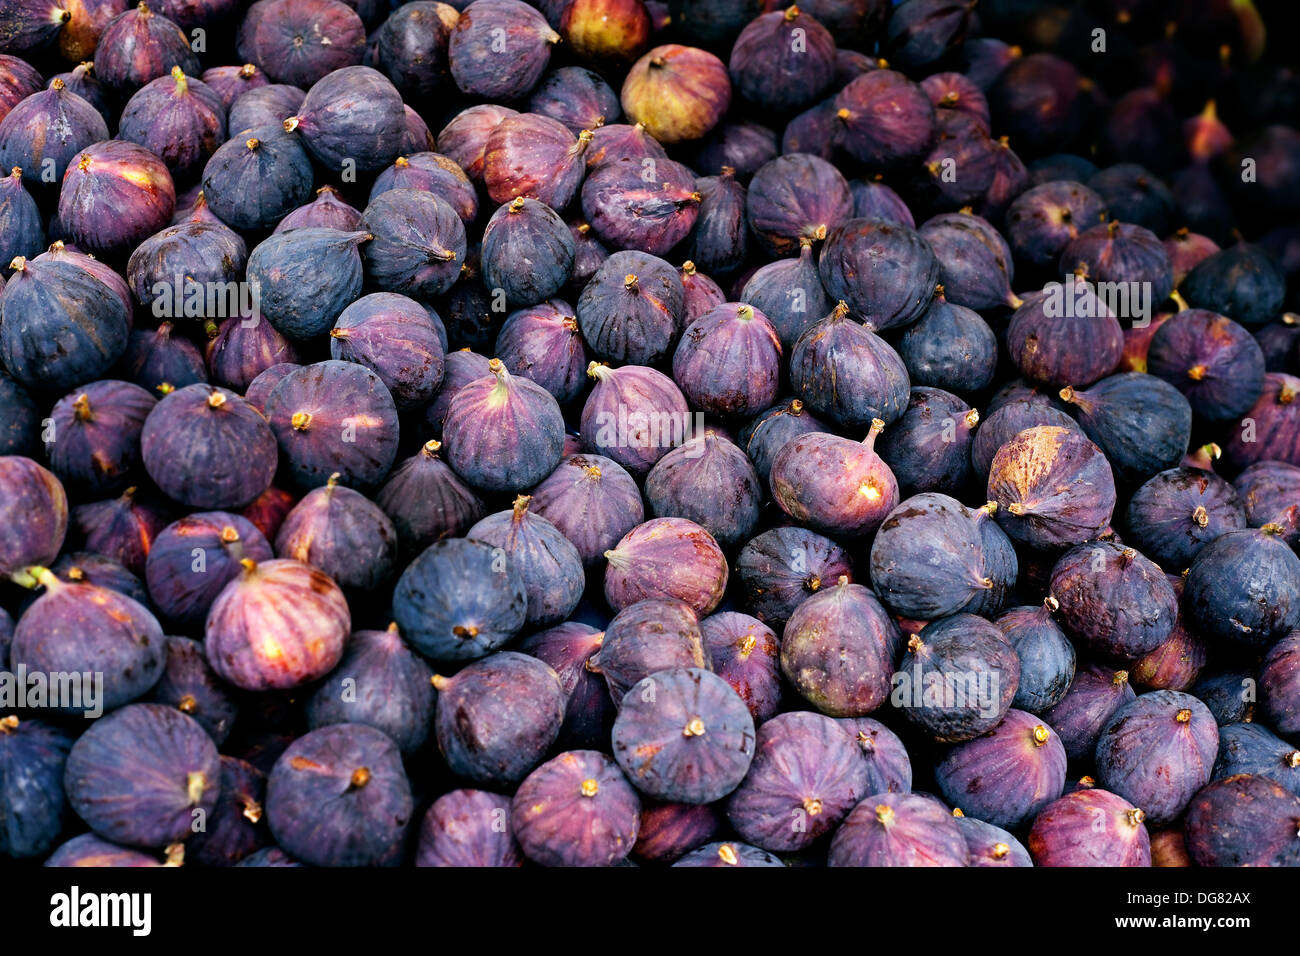 Fresh figs a pile of unopened figs - Stock Image